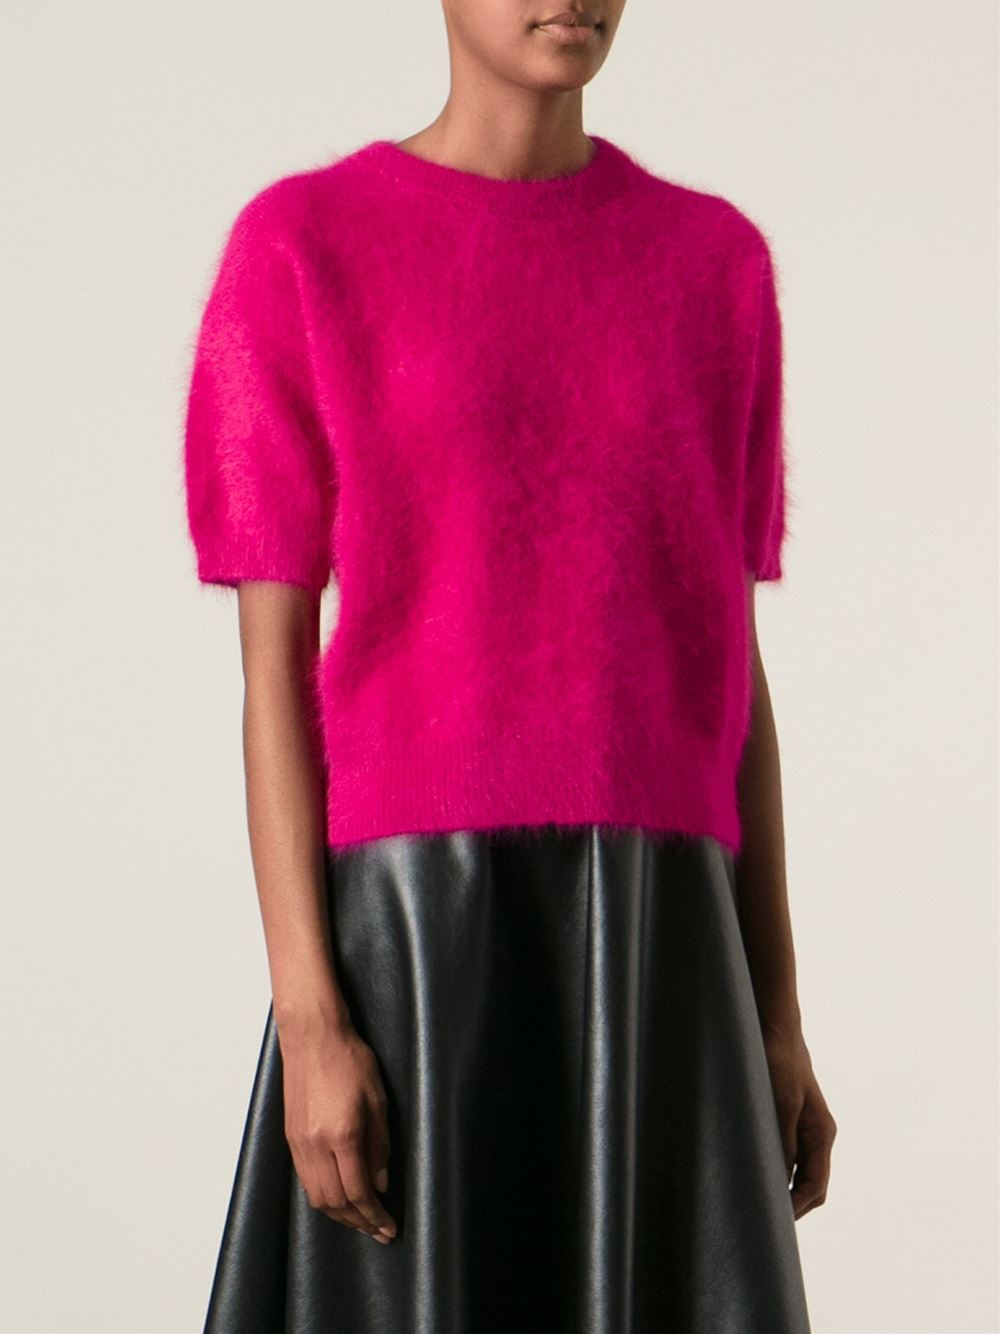 Michael michael kors Angora Sweater in Pink | Lyst